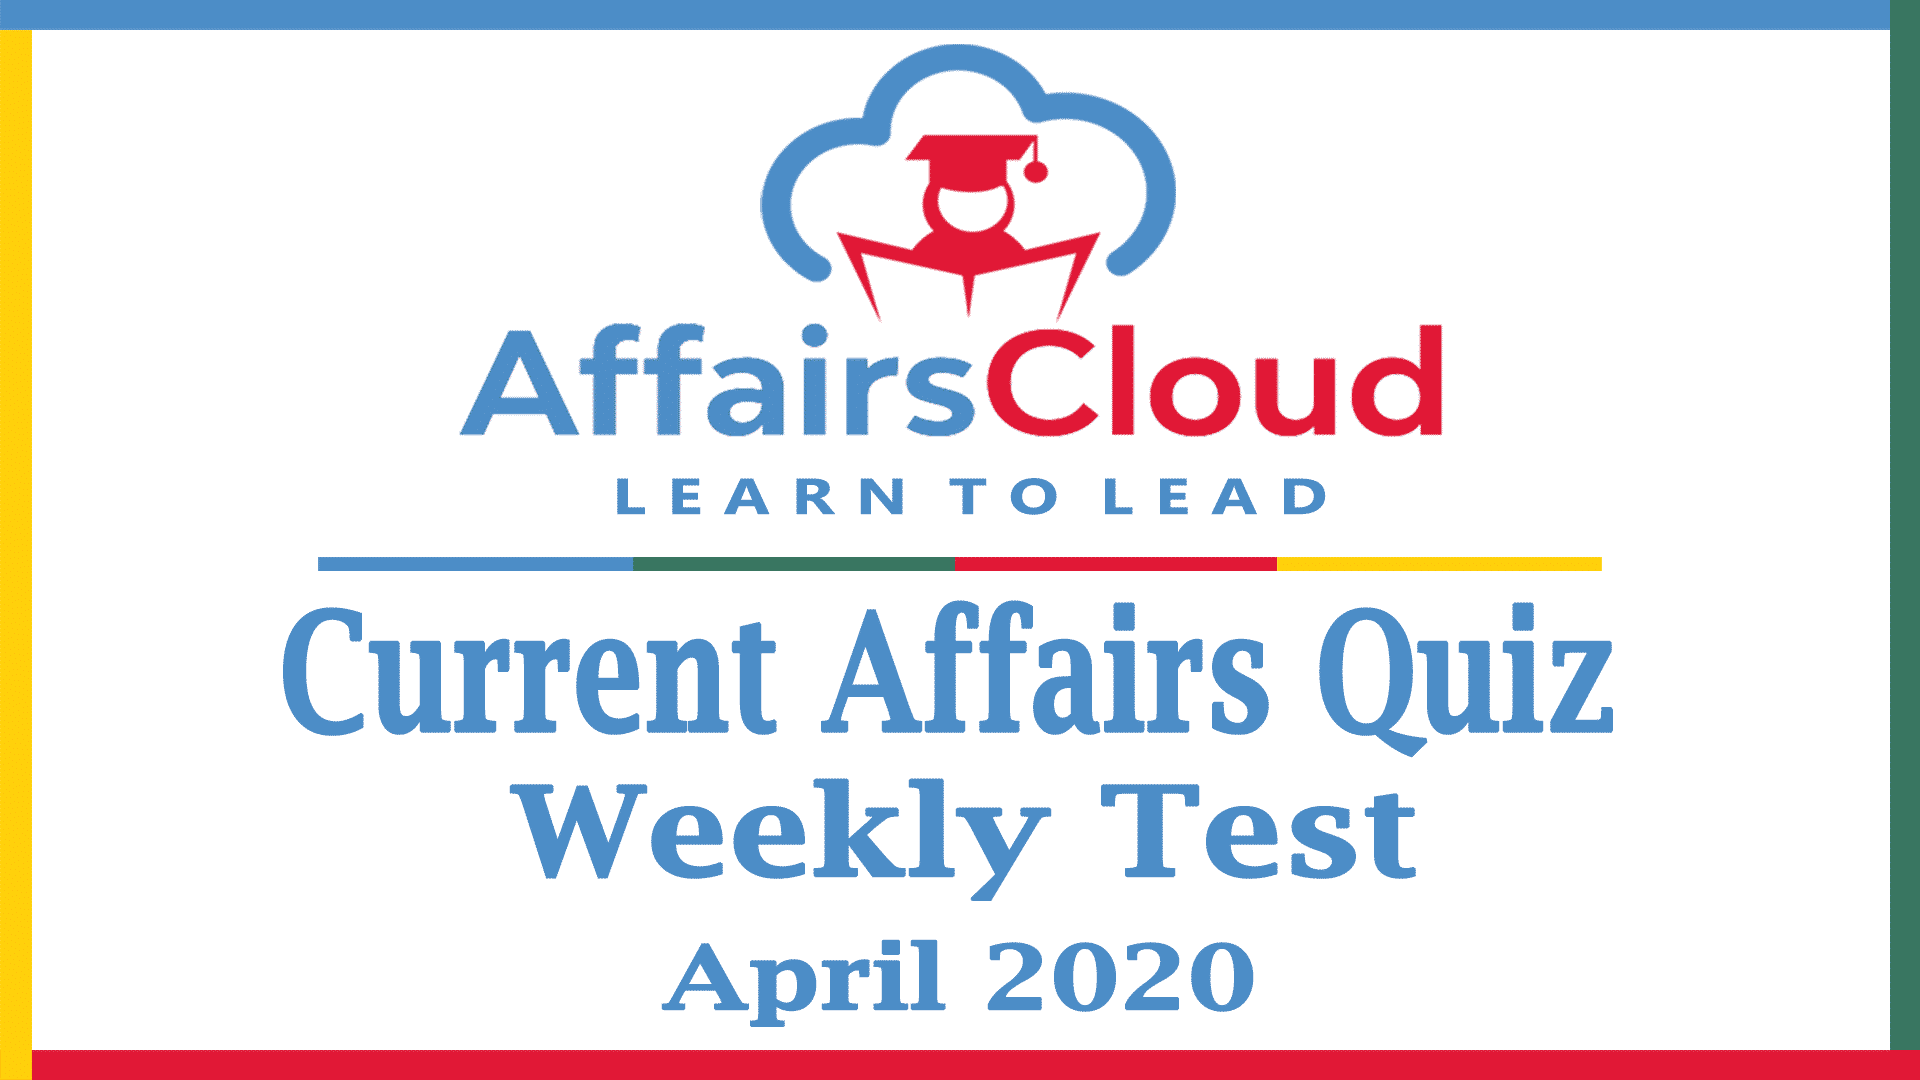 Current Affairs Weekly Test April 2020